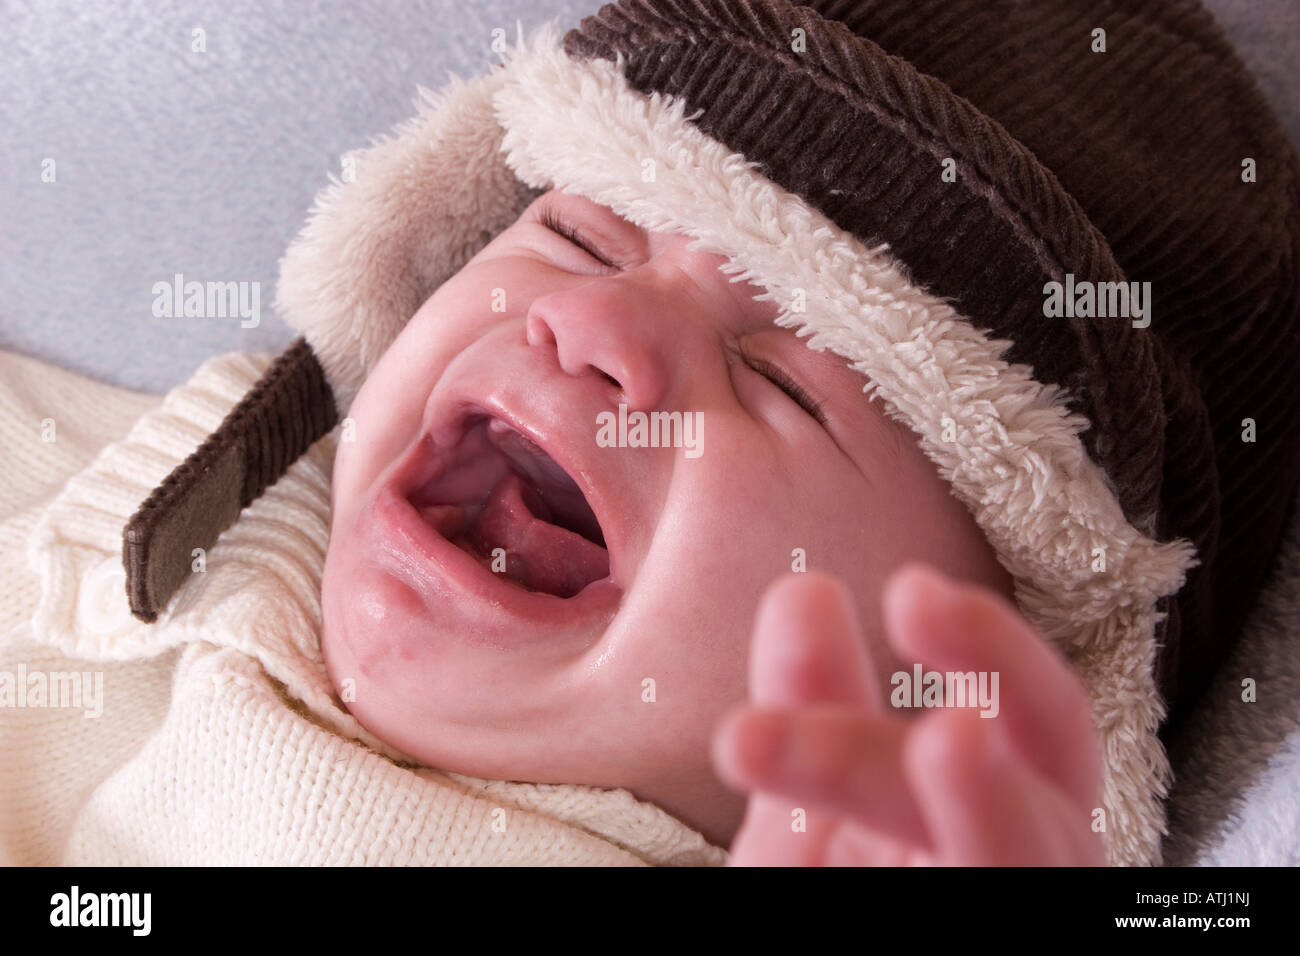 6 month old baby in winter hat screaming Stock Photo  16326605 - Alamy 613a5196ad3